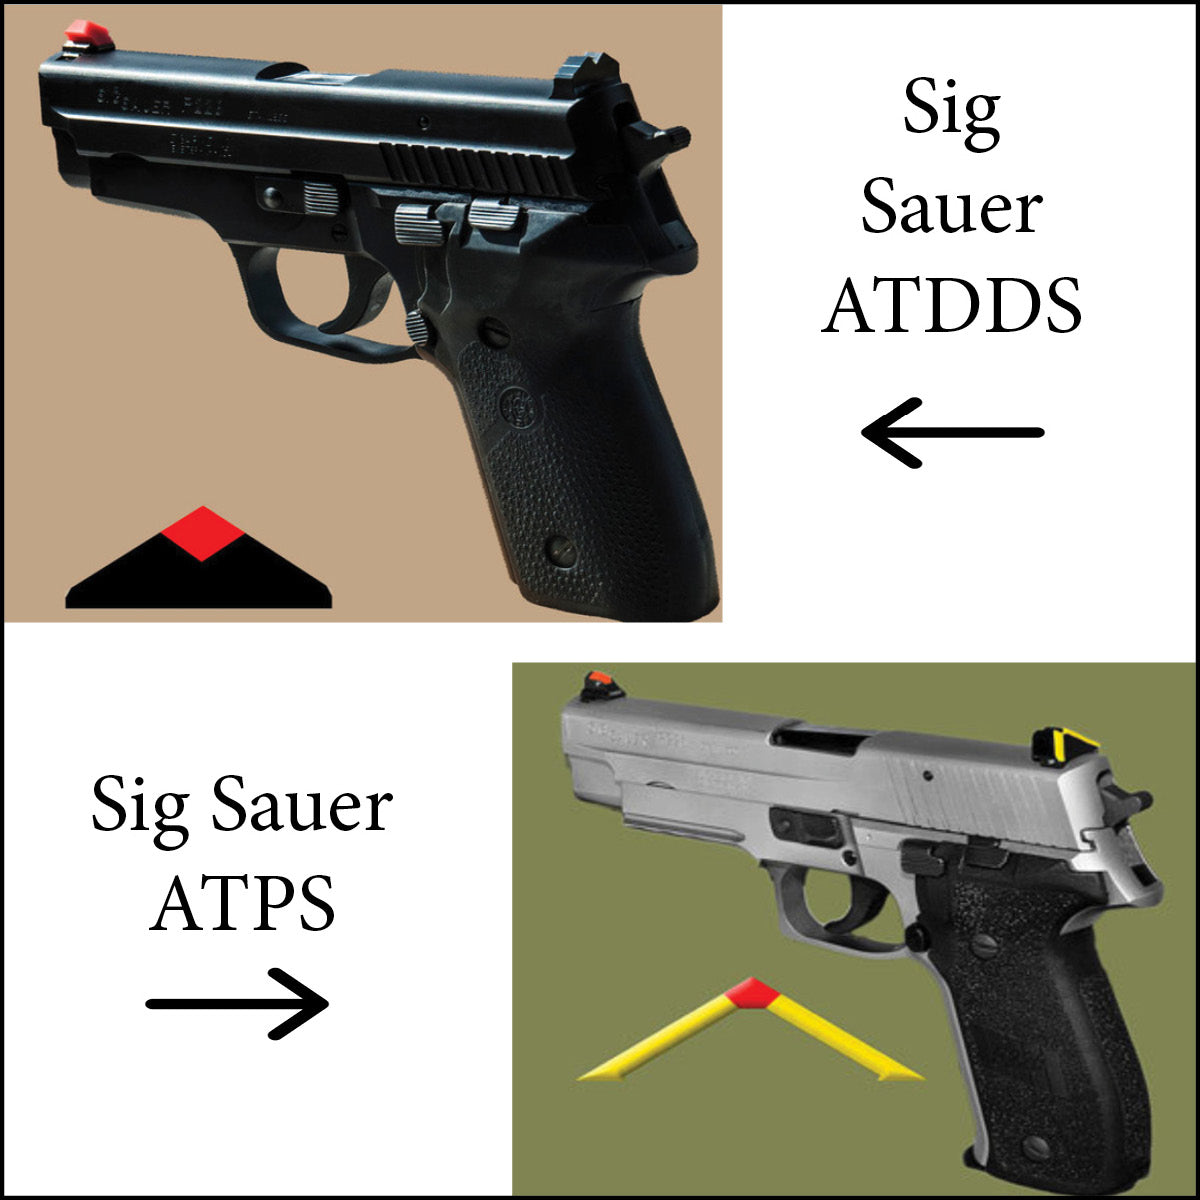 ATDDS & ATPS SIG SAUER - ALL MODELS, INCLUDING 320 (Except 250, 1911's, 232 and .22's) - professional installation is recommended